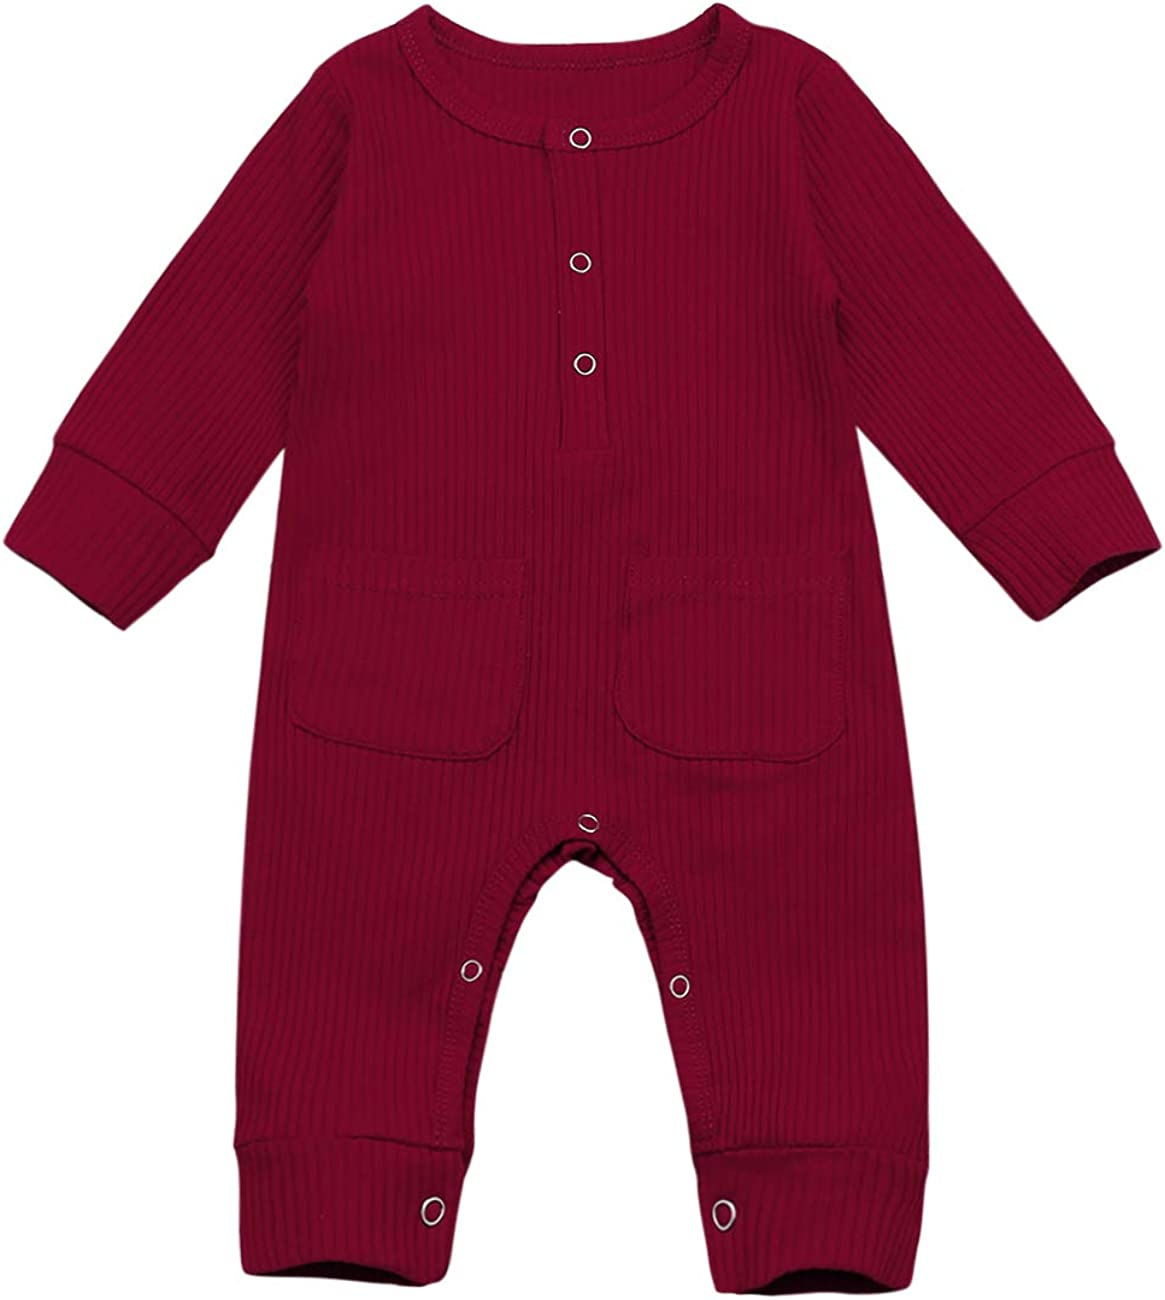 Newborn Infant Baby Boys Girls Romper Solid Color Long Sleeve Button Jumpsuit Bodysuit with Pocket One Piece Outfit Clothes